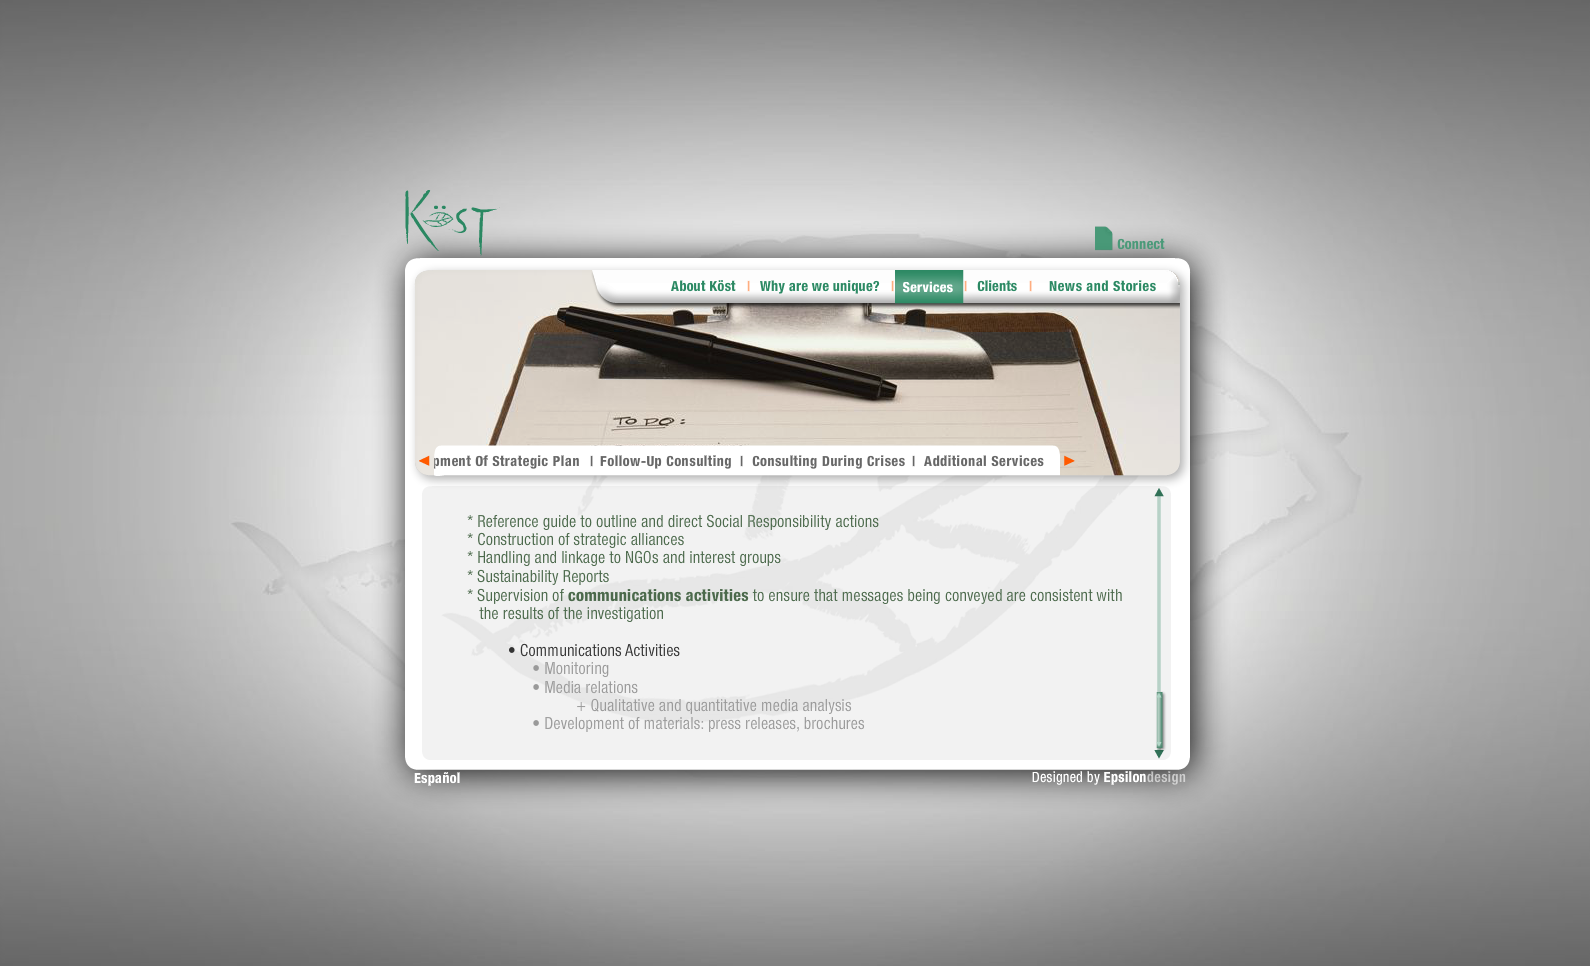 Green Kost - Services (Follow-up consulting 2)